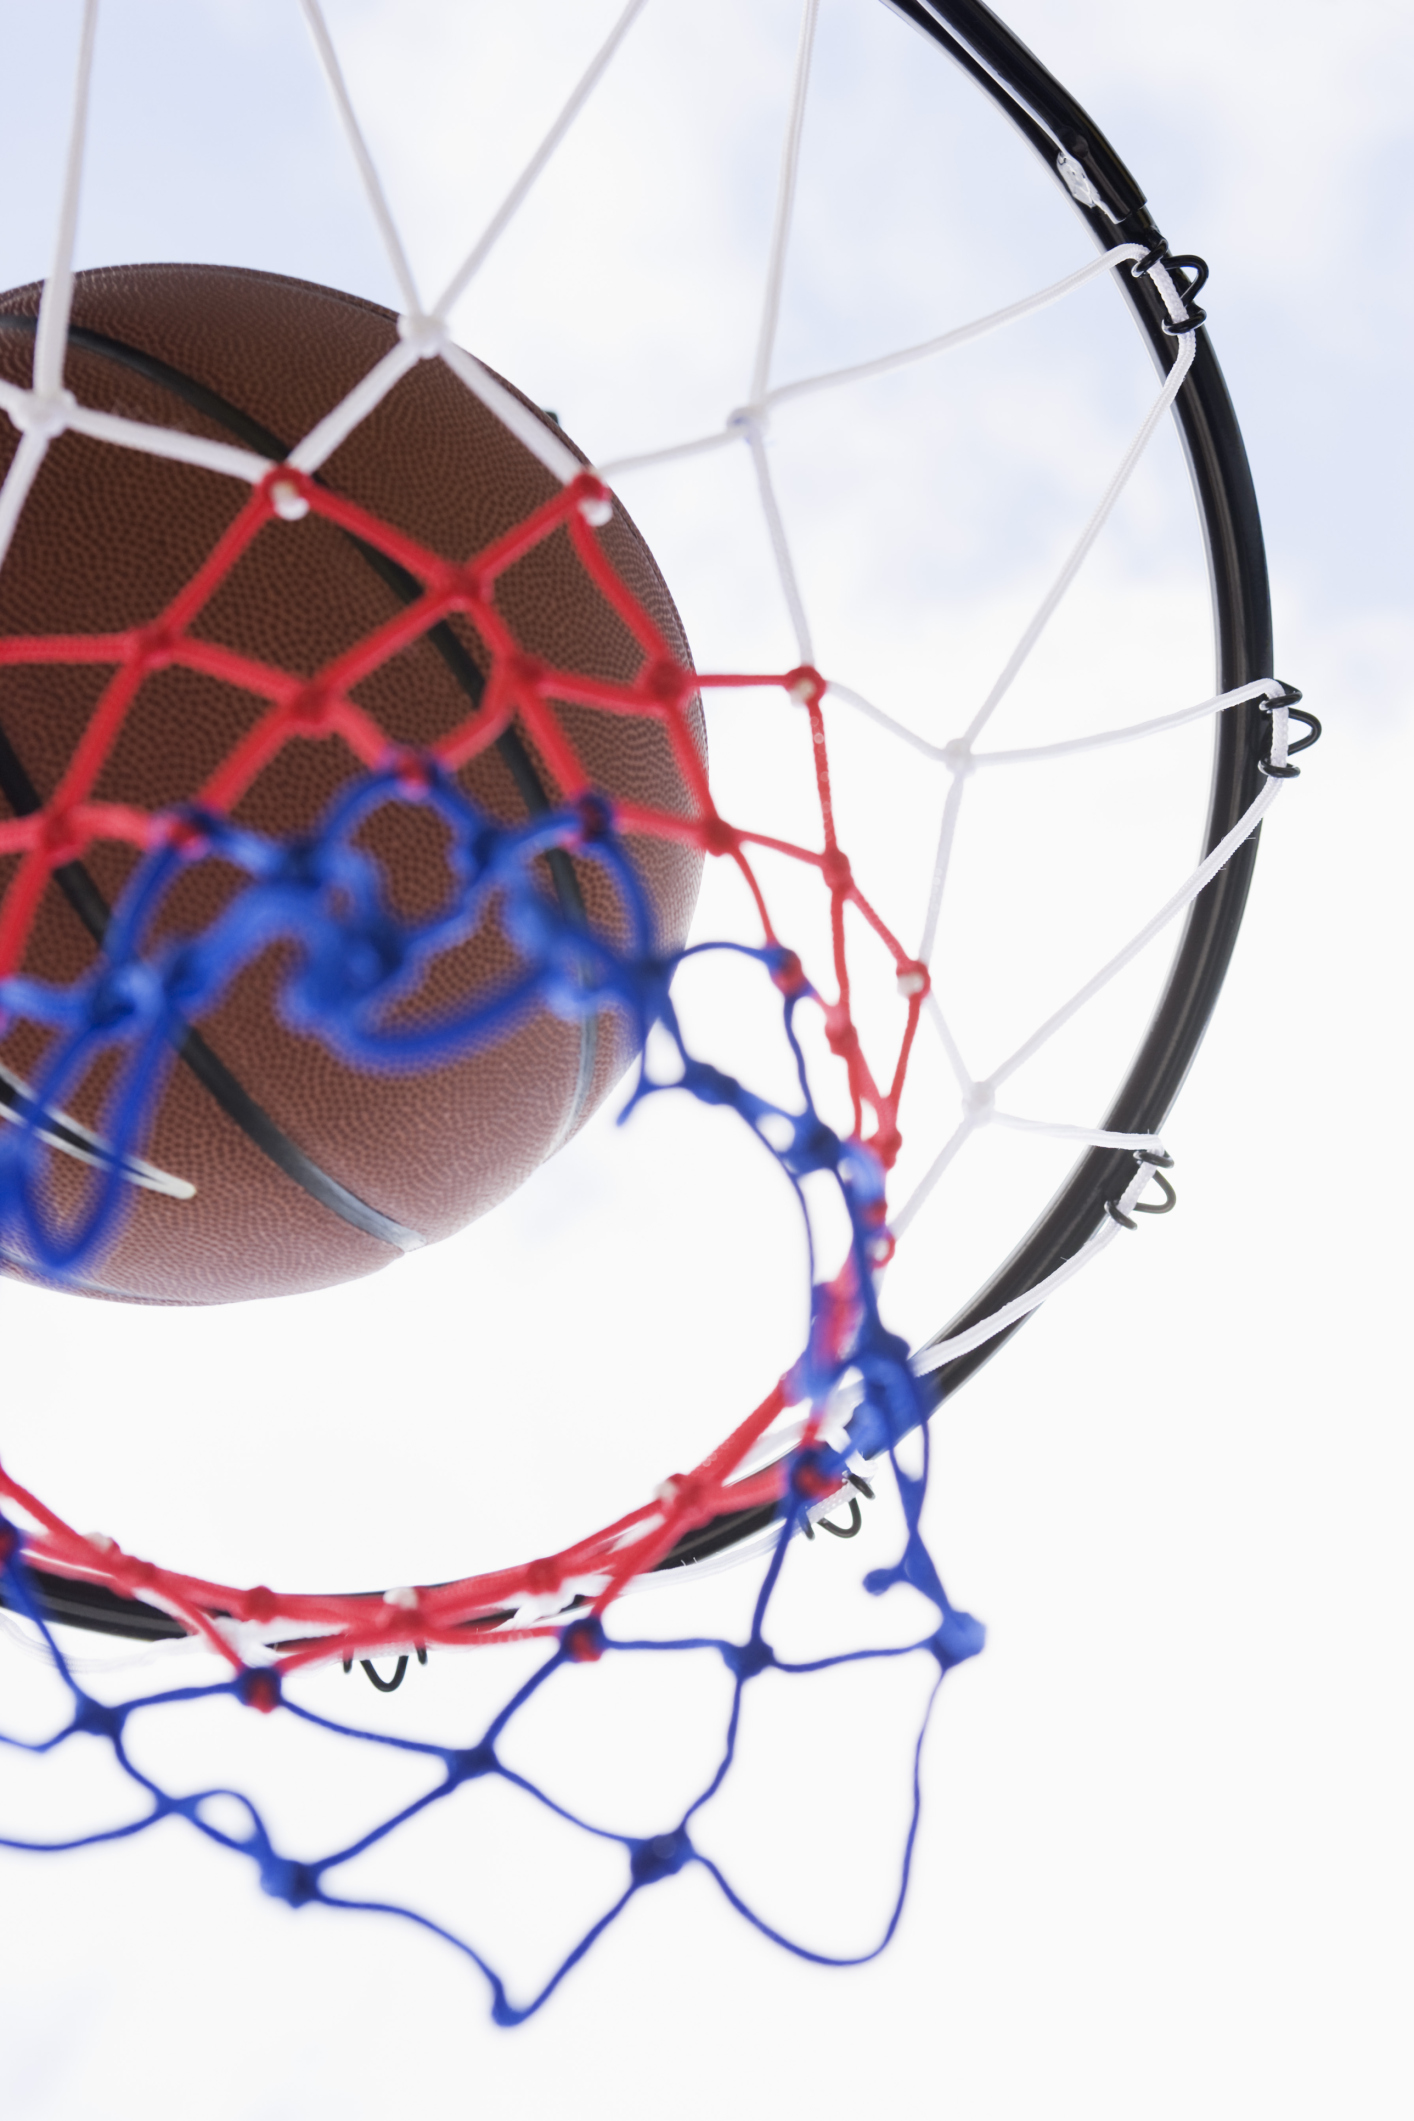 1414x2121 Purpose Of The Net On A Basketball Rim